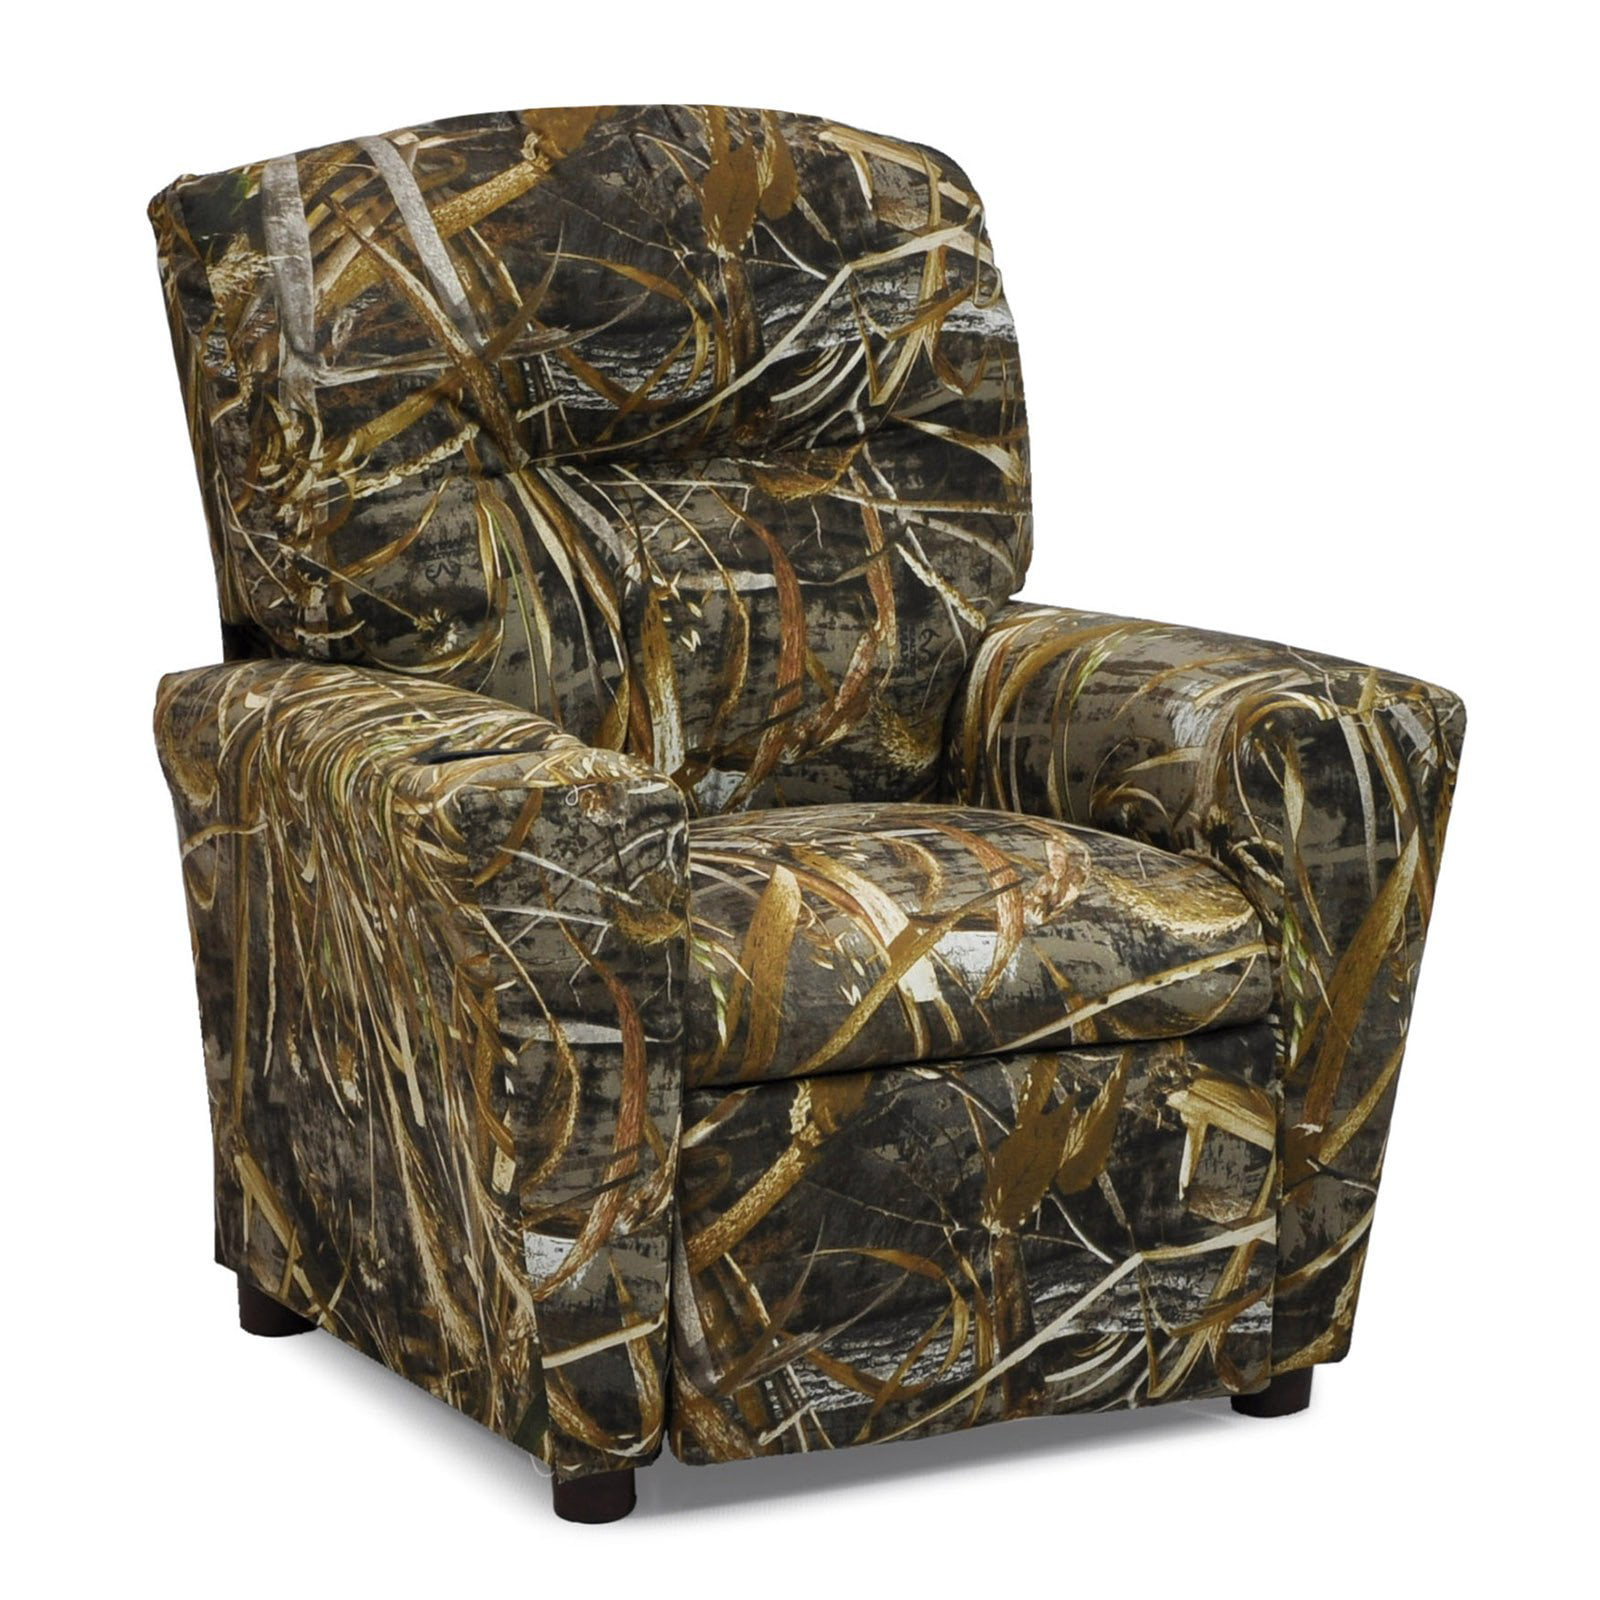 Awesome Kidz World Real Tree MAX 5 Camouflage Kids Recliner   Walmart.com